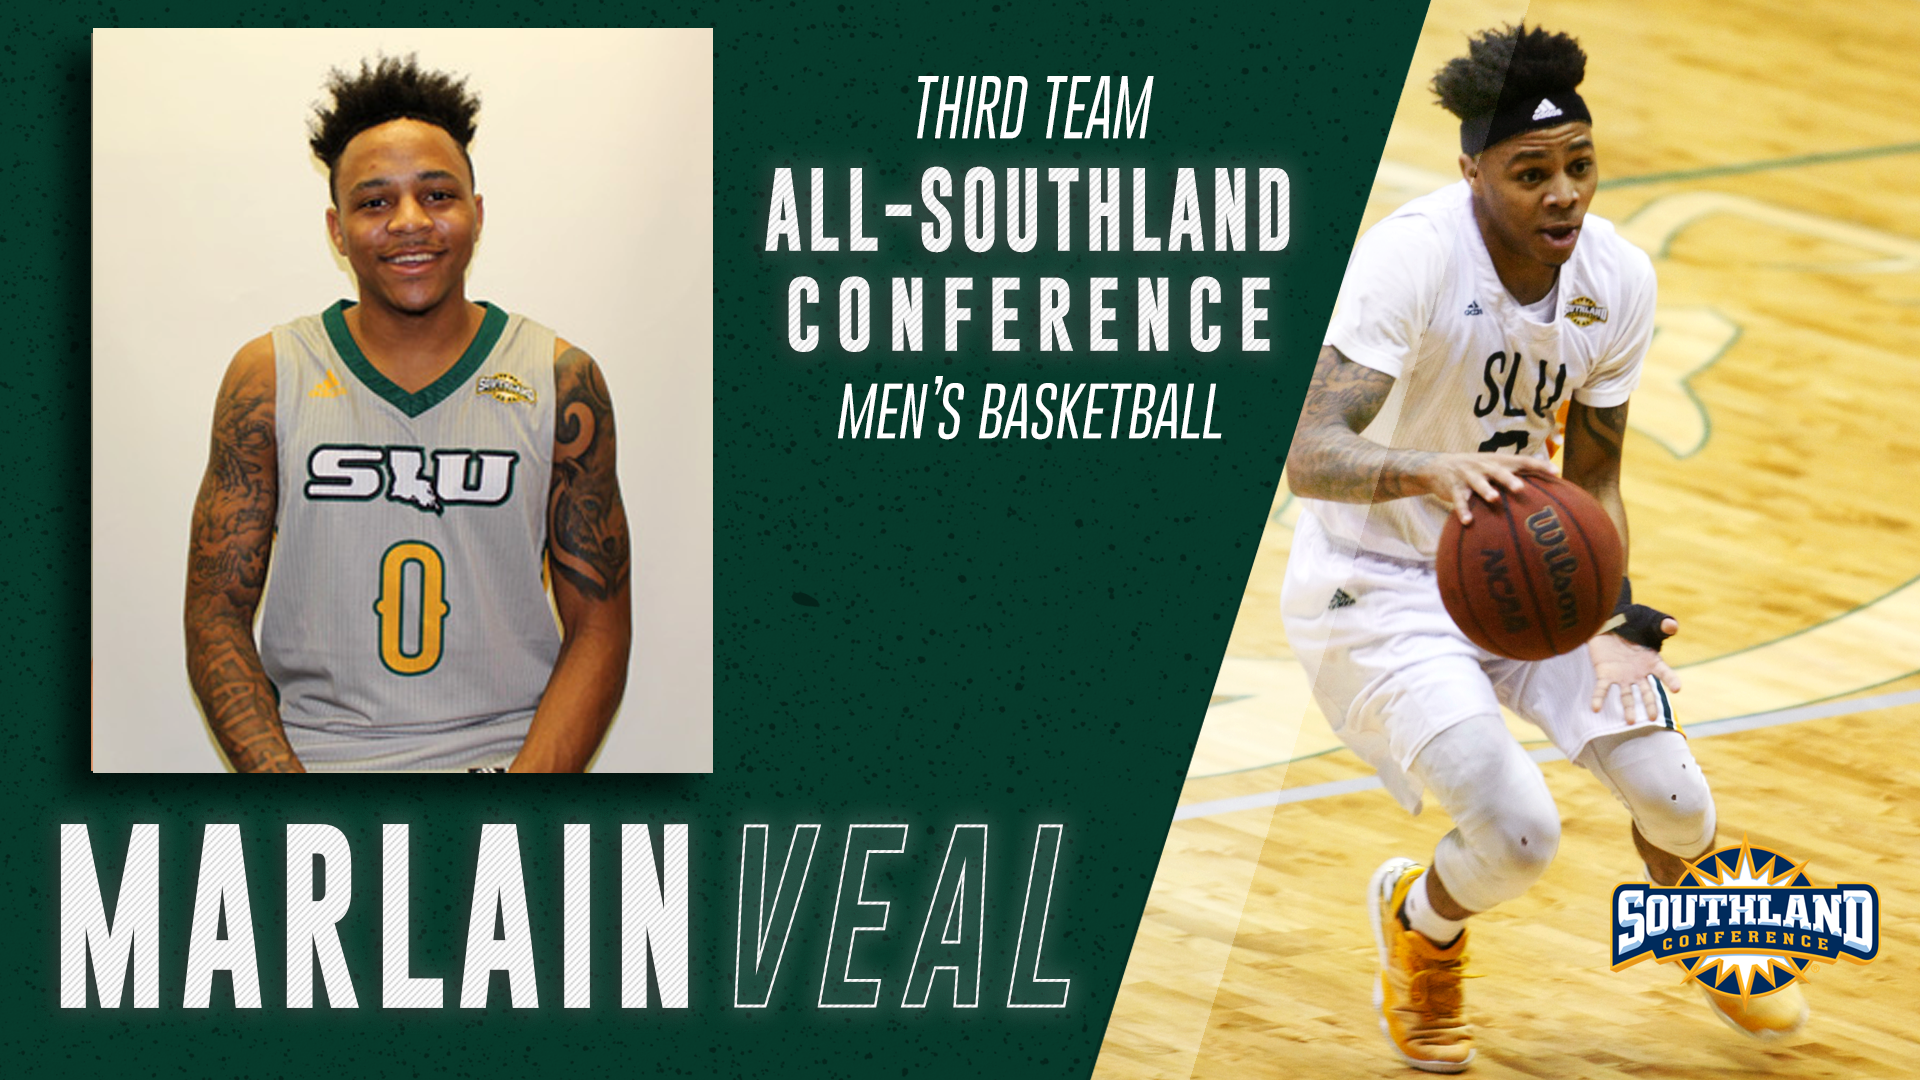 finest selection 43727 2133d Lions' Veal Picks Up All-Conference Honors - Southeastern ...